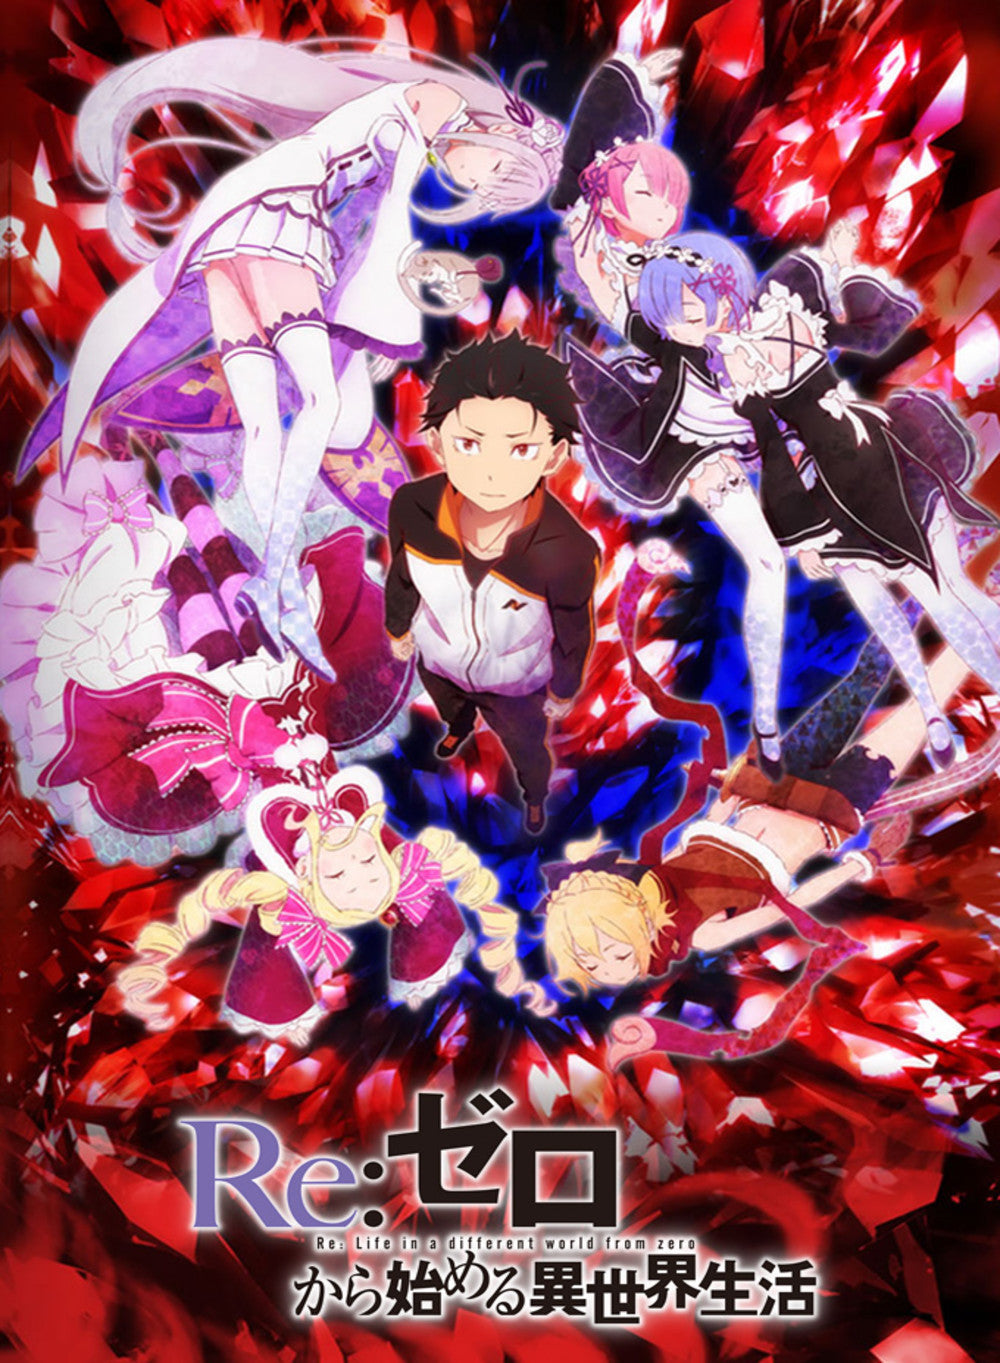 Boomslank Review - Re:ZERO